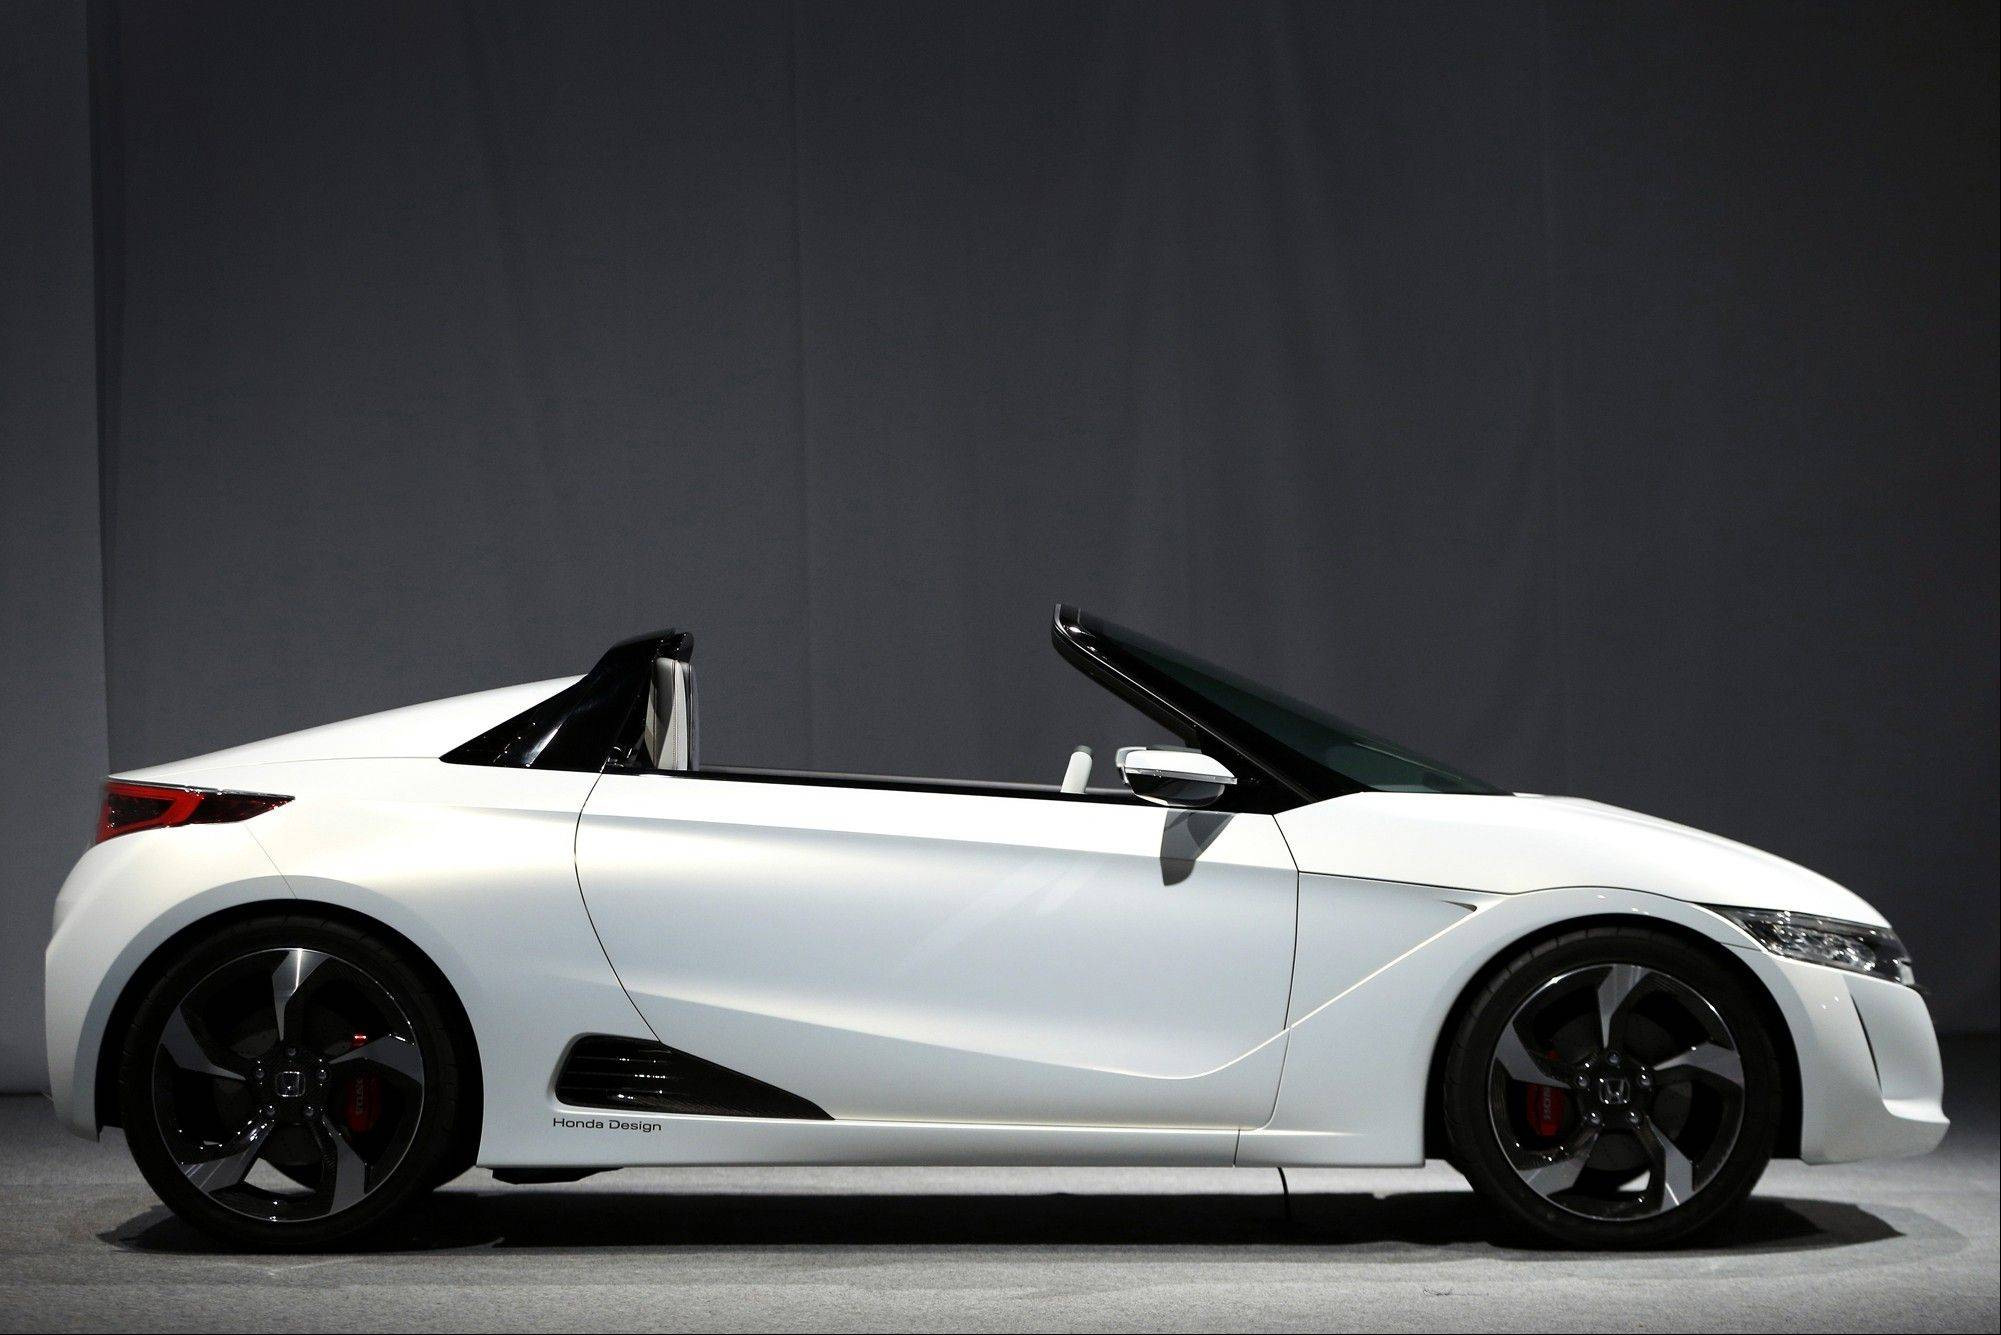 At the Tokyo Motor Show opening this week, Honda will unveil the two-seat S660 convertible, its first mini sports car since 1996. Daihatsu has a rival model with panels that can be changed like an iPhone cover. More than a third of the show's debuts will be mini vehicles, up from about 14 percent in 2011, data compiled by Bloomberg show.